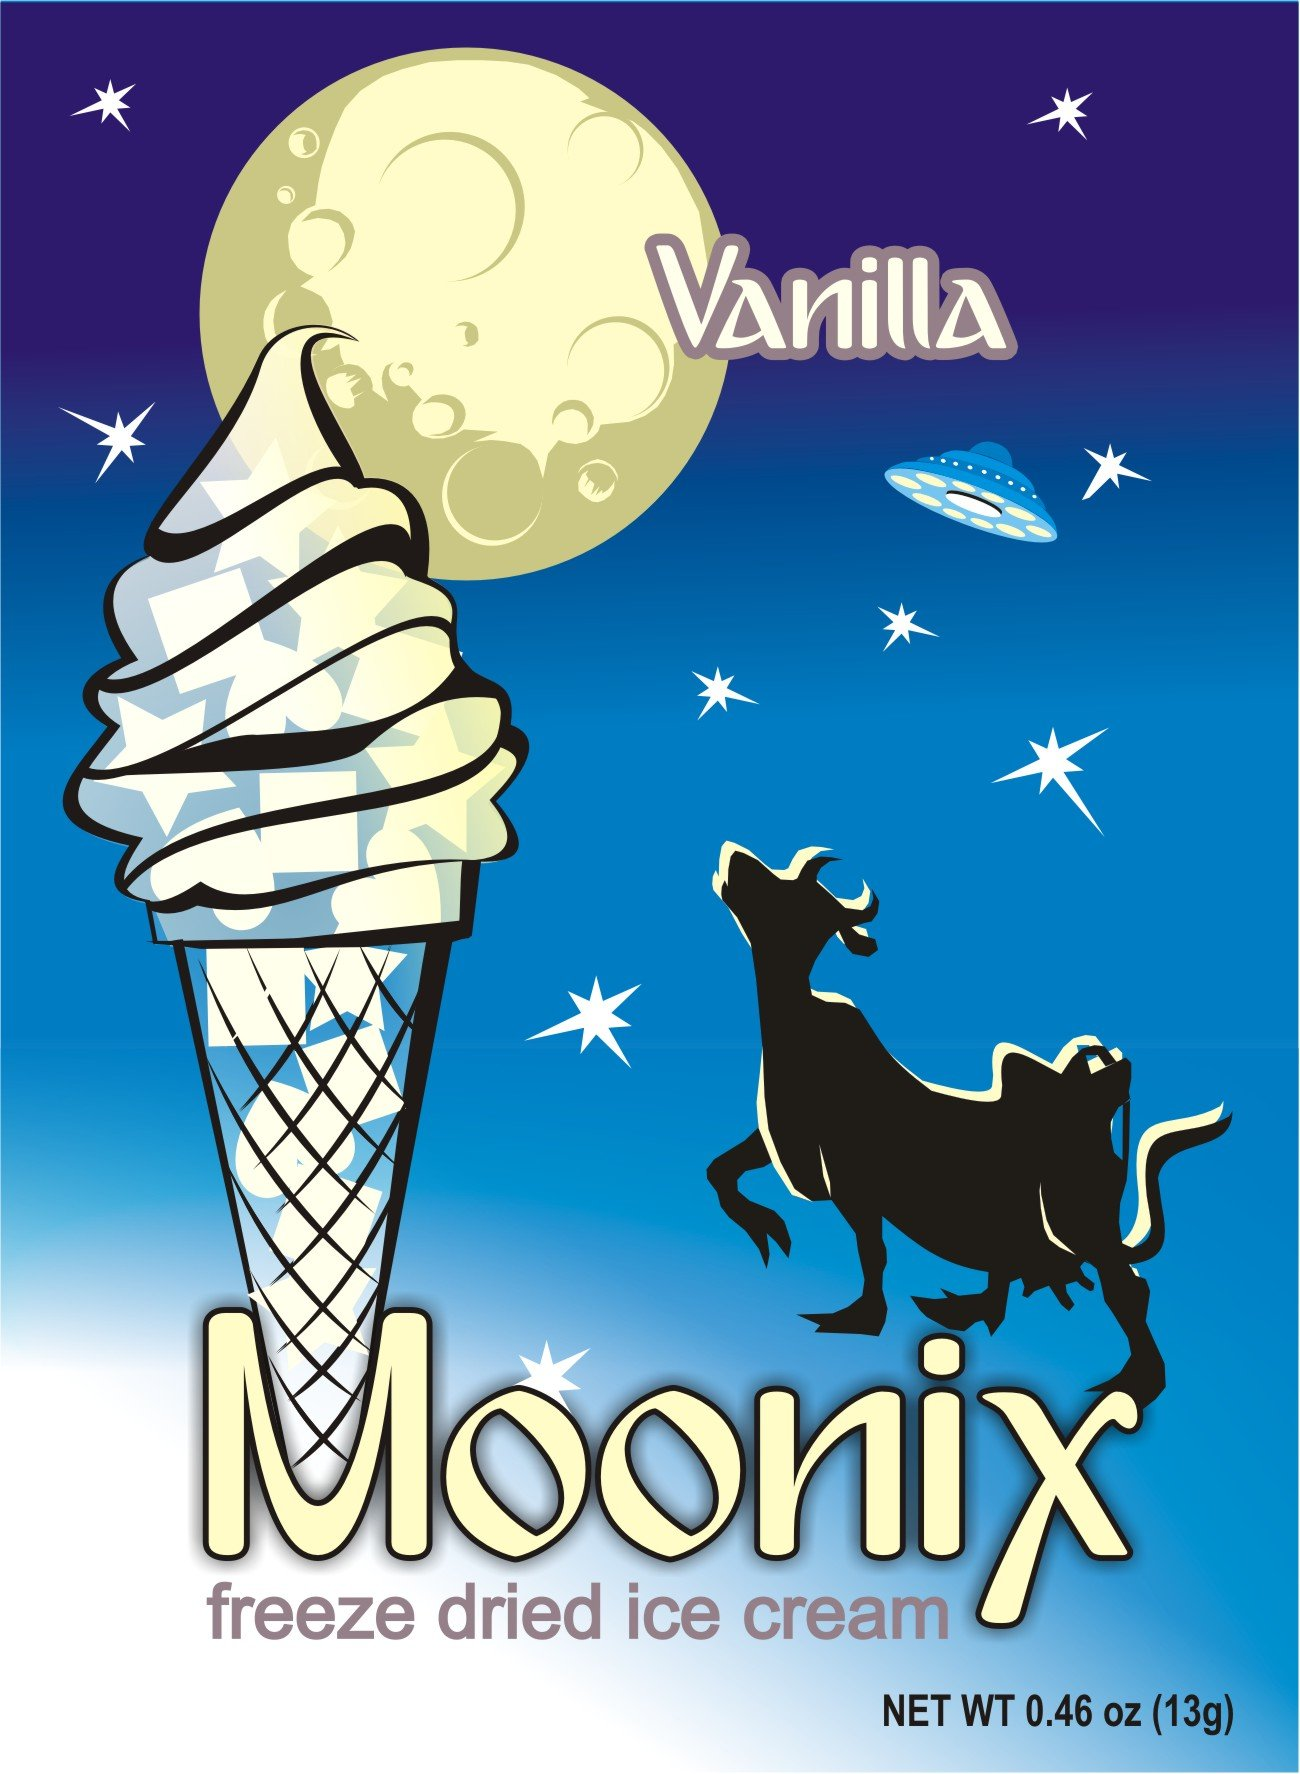 Moonix Freeze Dried Ice Cream (Vanilla)